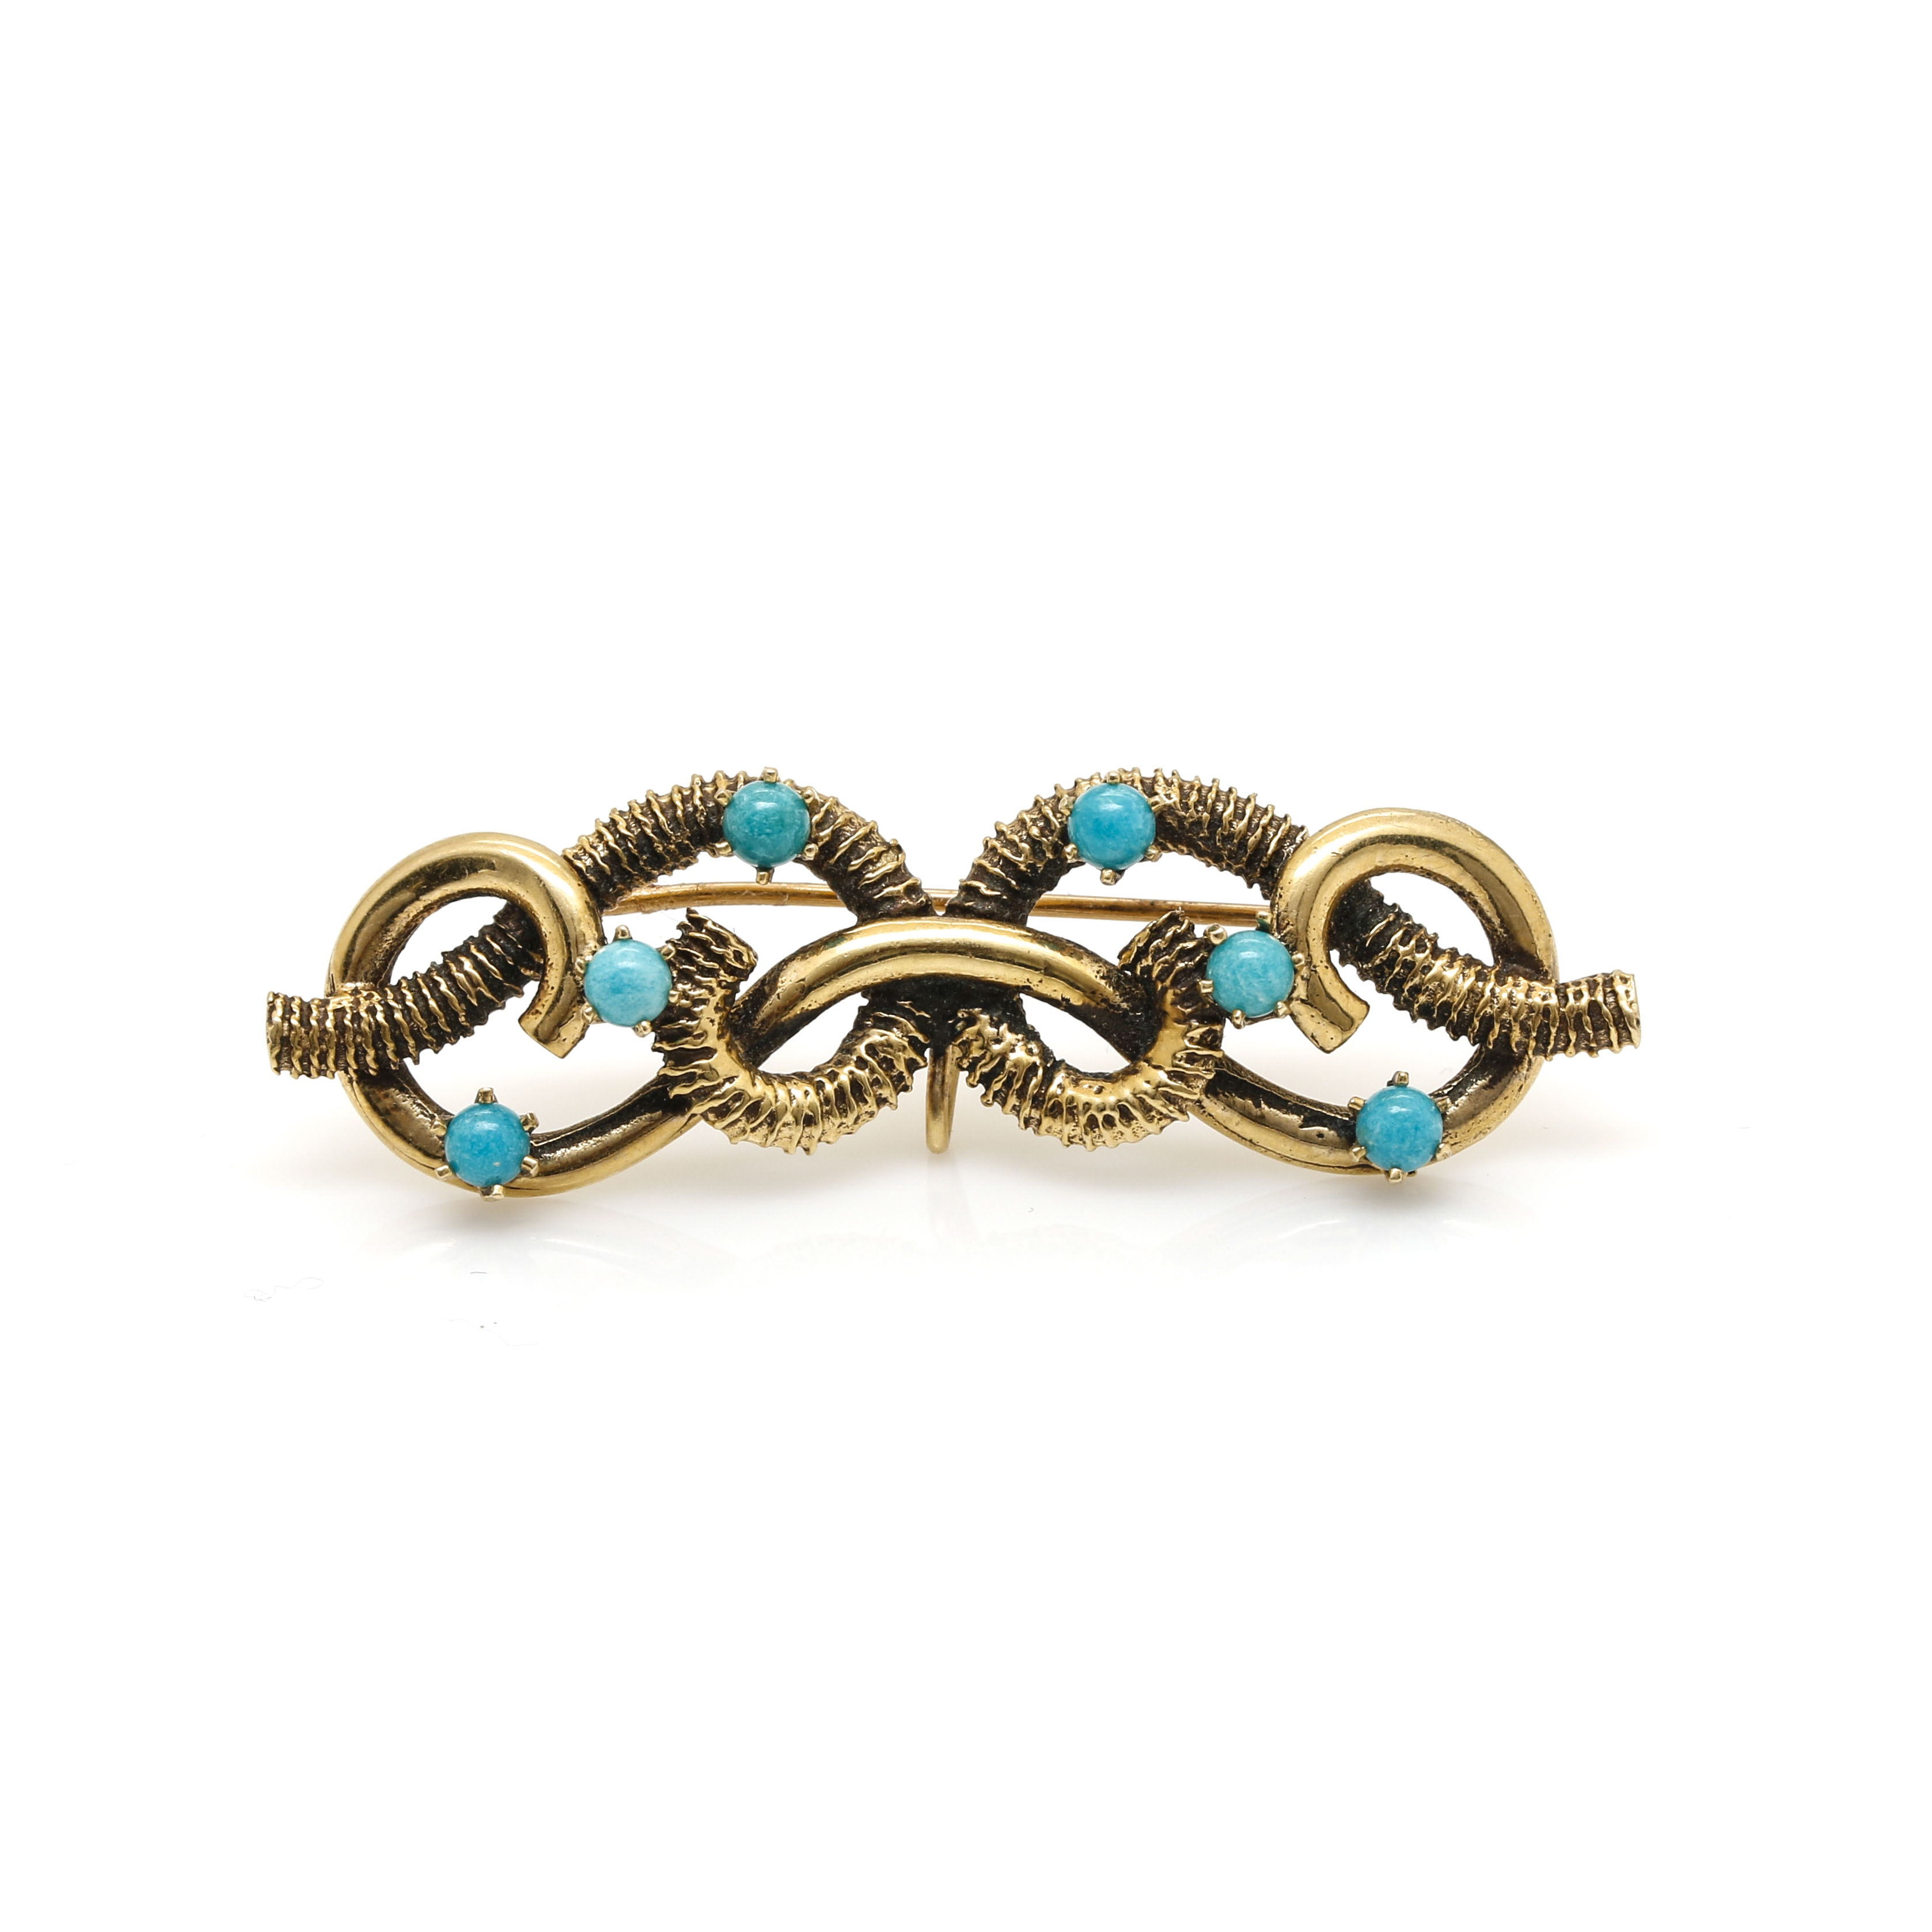 14K Yellow Gold Turquoise Brooch